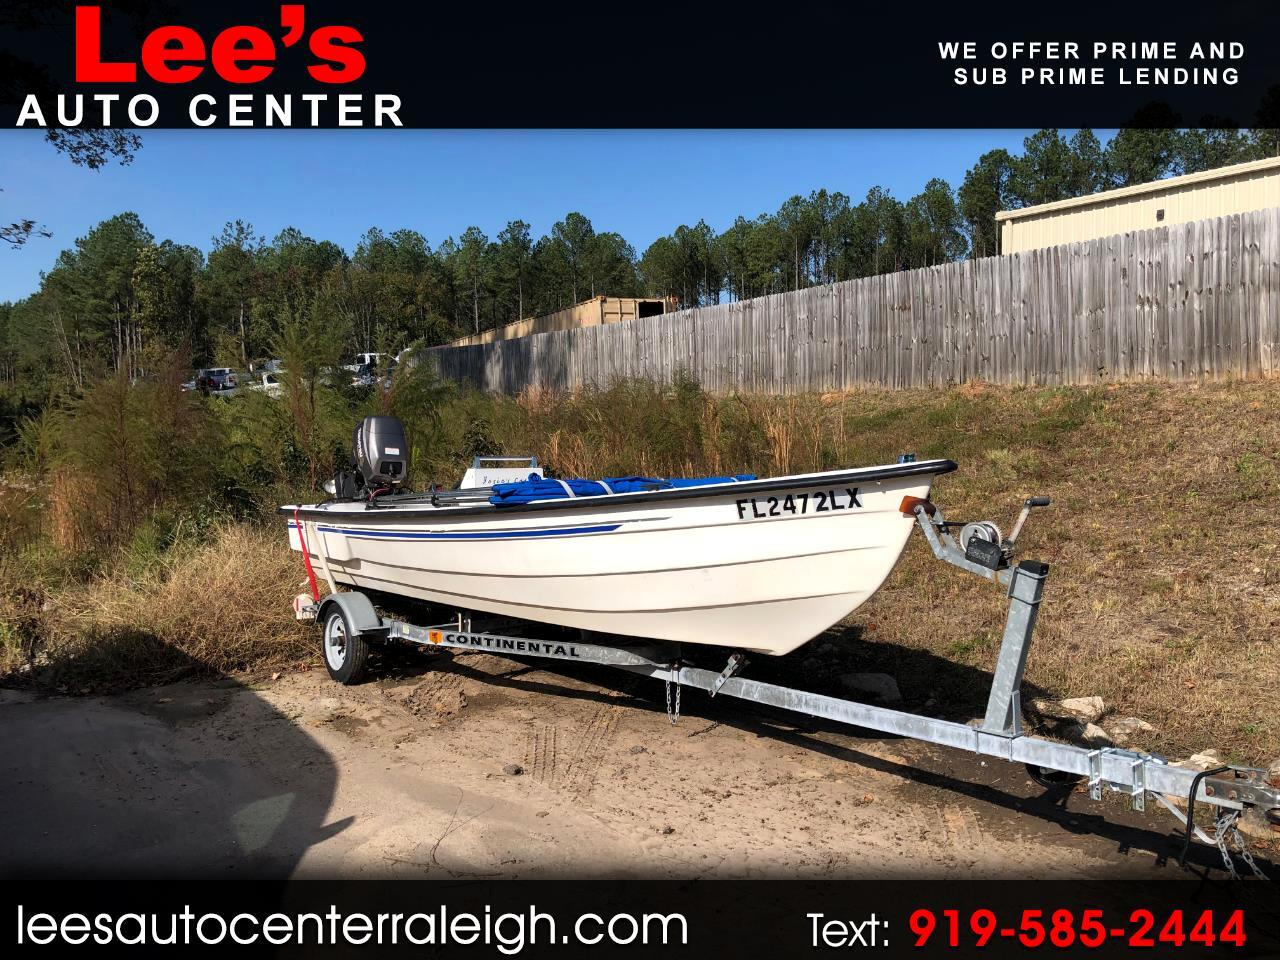 2003 Gulf Stream Gulf Breeze Sport GULF CRAFT SKIFF W/ 4 STROKE & TRAILER